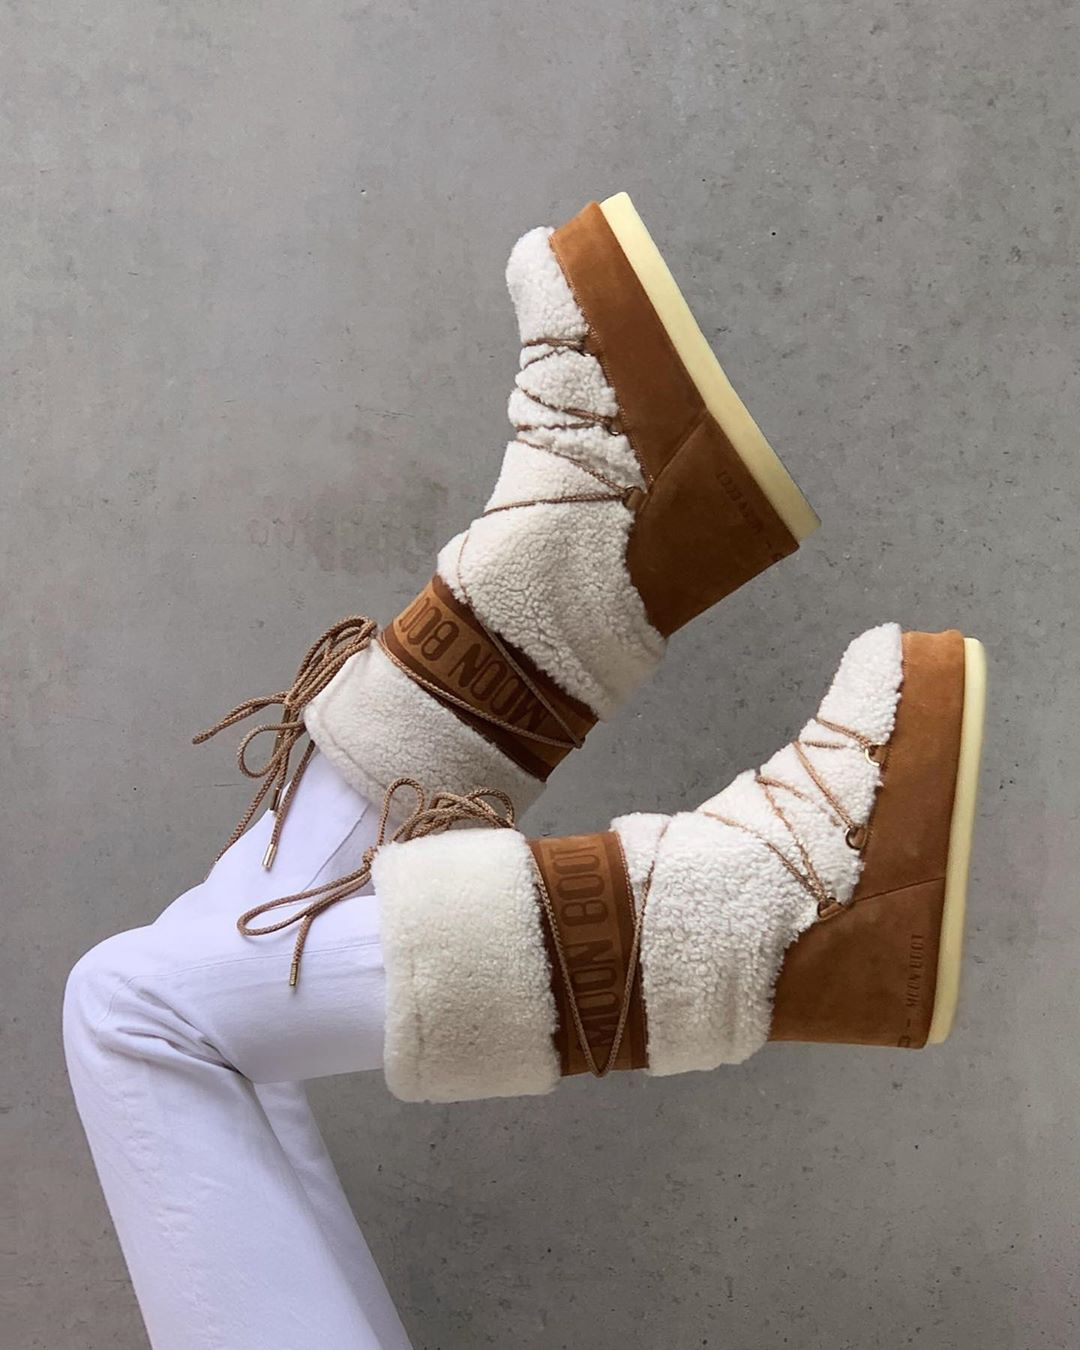 claire-rose-cliteur-moon-boot-wool-and-suede-boots-instagram